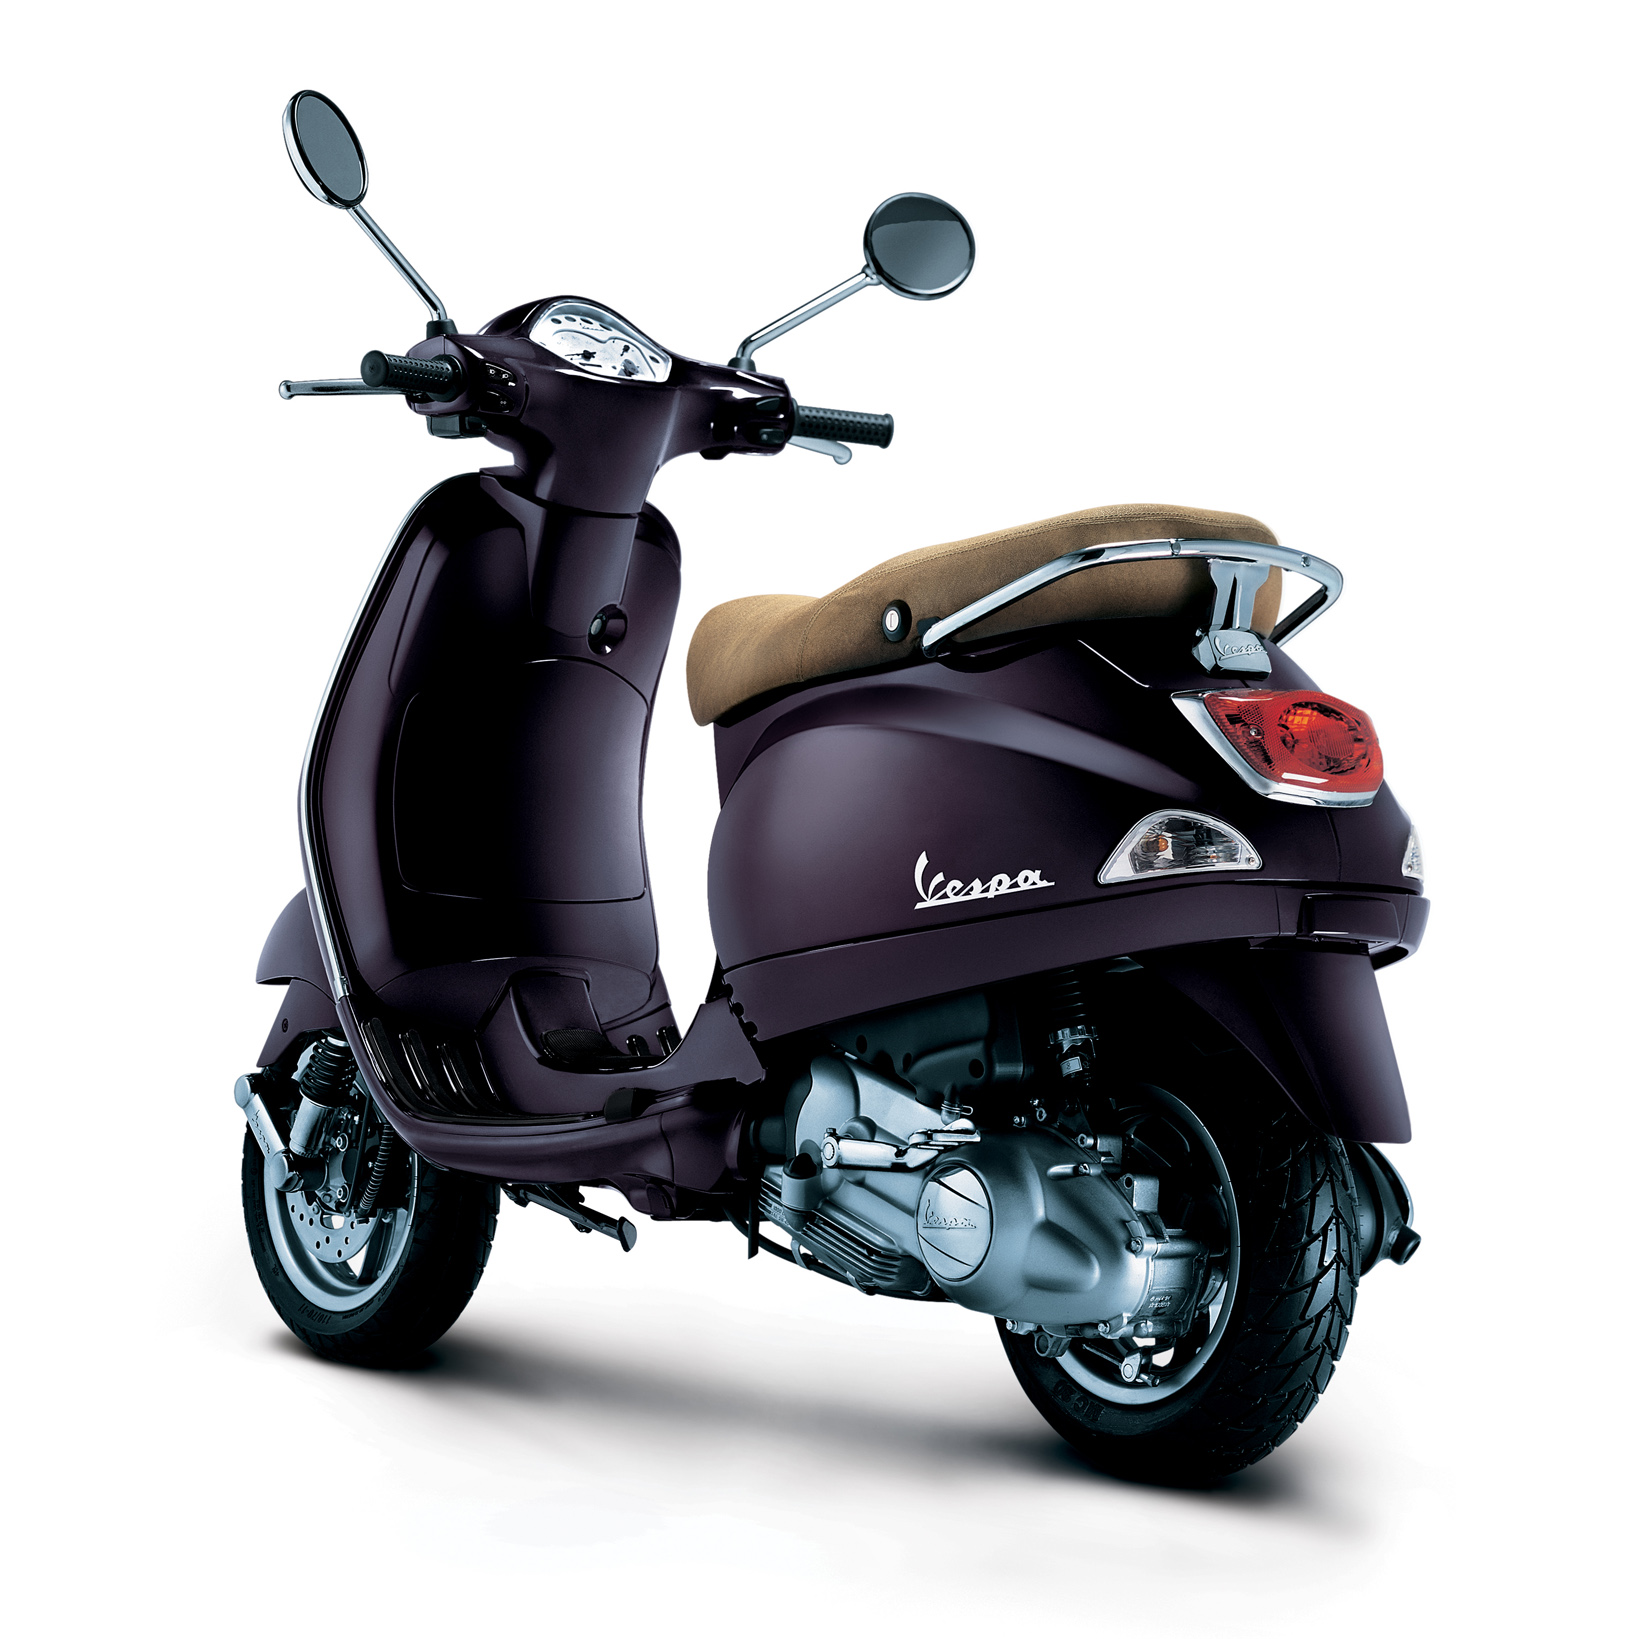 Moto vespa 150 photo - 2